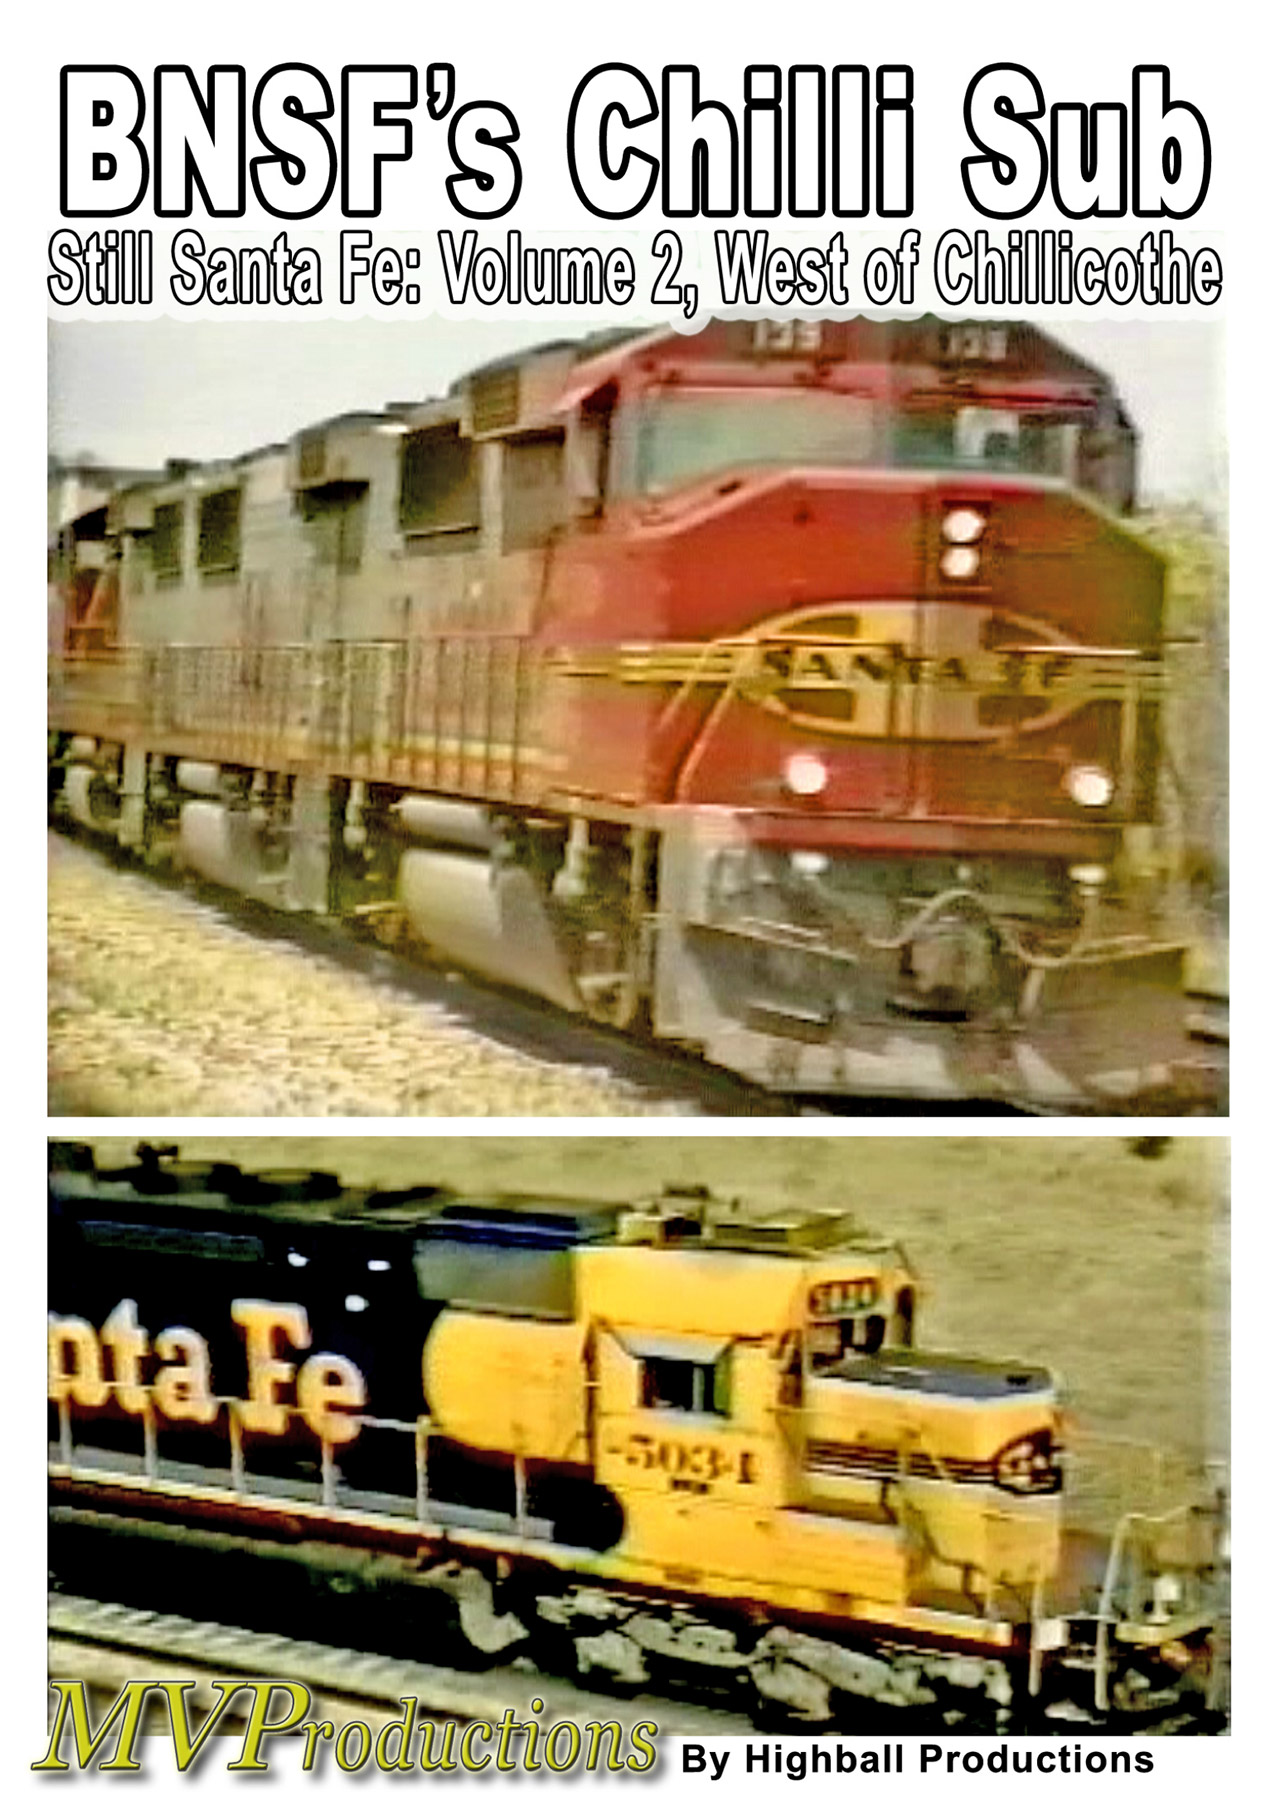 BNSF Chillicothe Sub: Still Santa Fe Volume 2, West of Chillicothe Midwest Video Productions MVCHIL2 601577880134